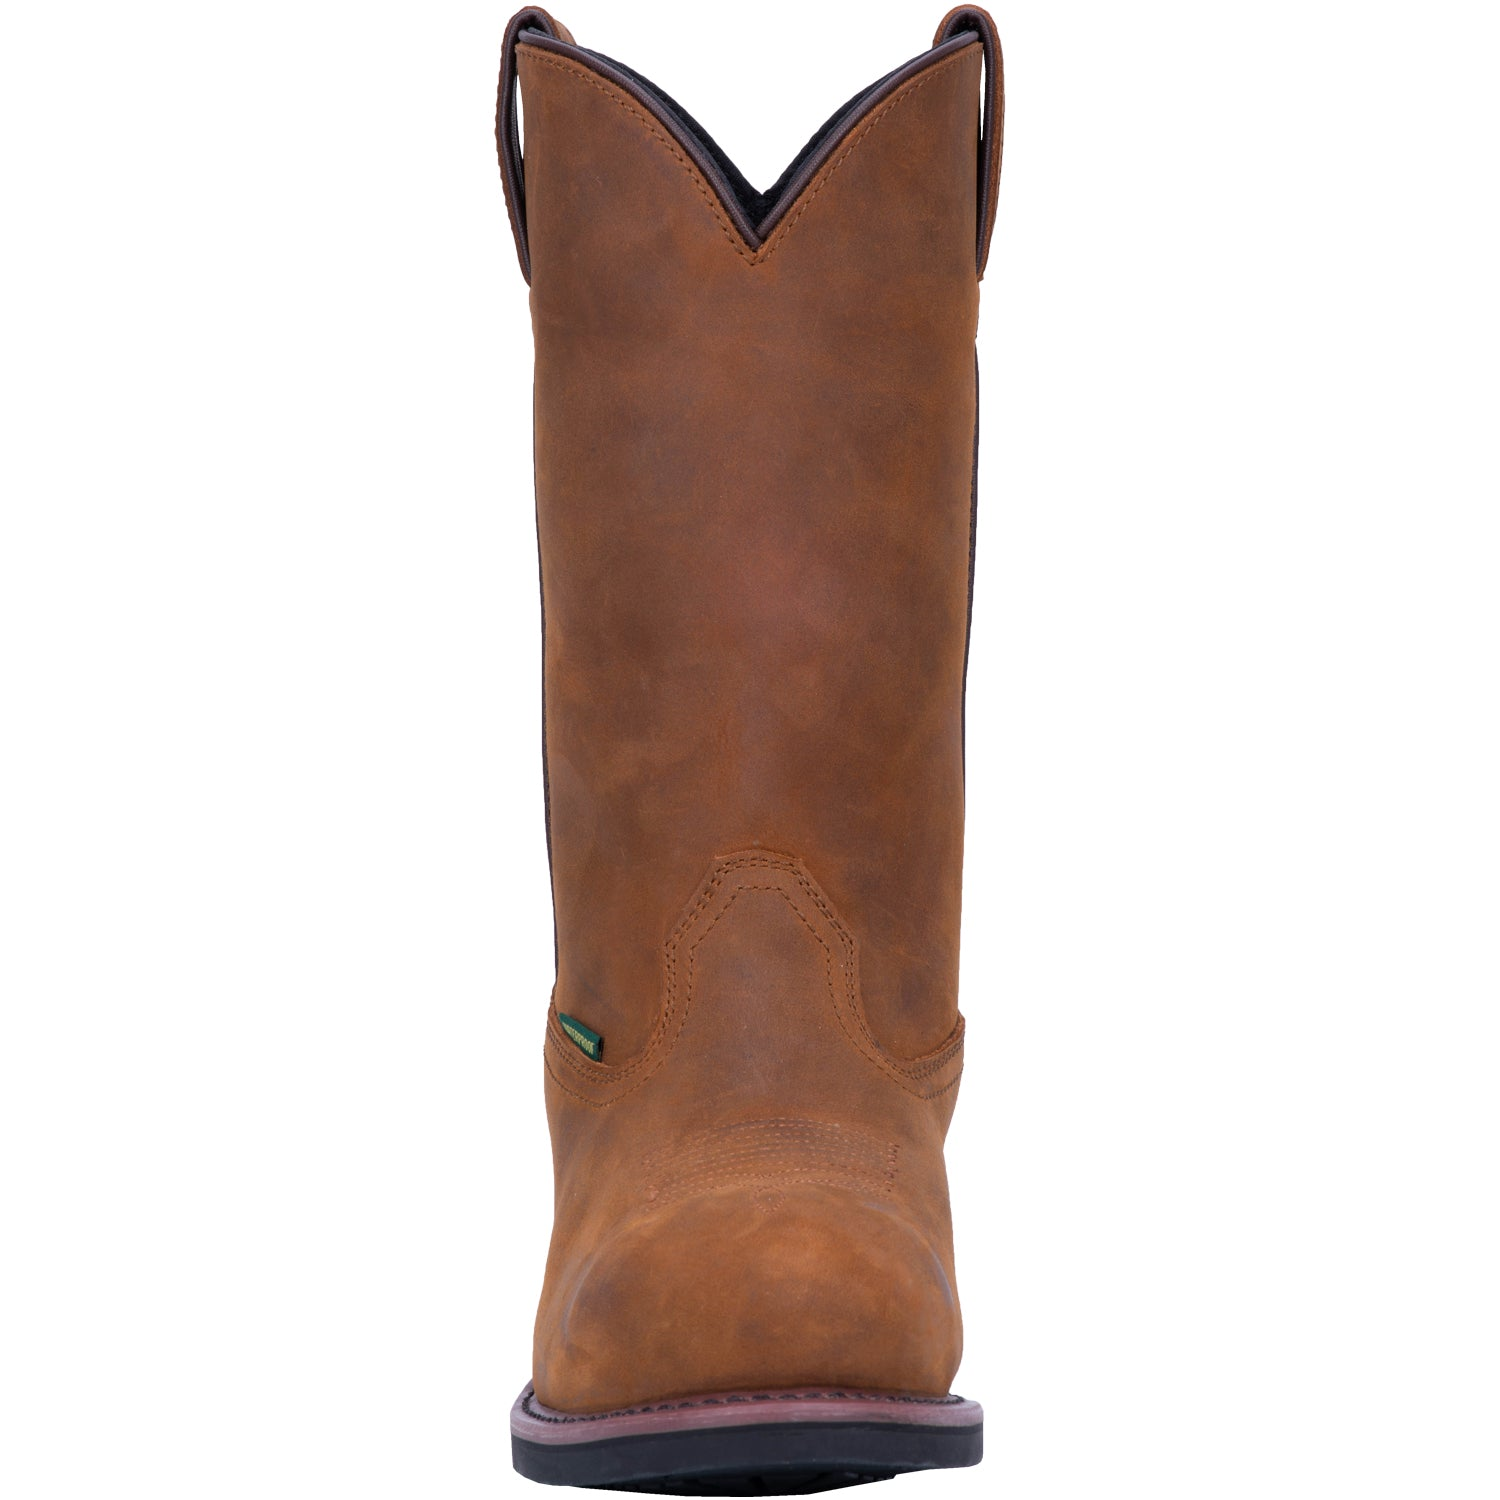 ALBUQUERQUE WATERPROOF LEATHER BOOT 15521805172778